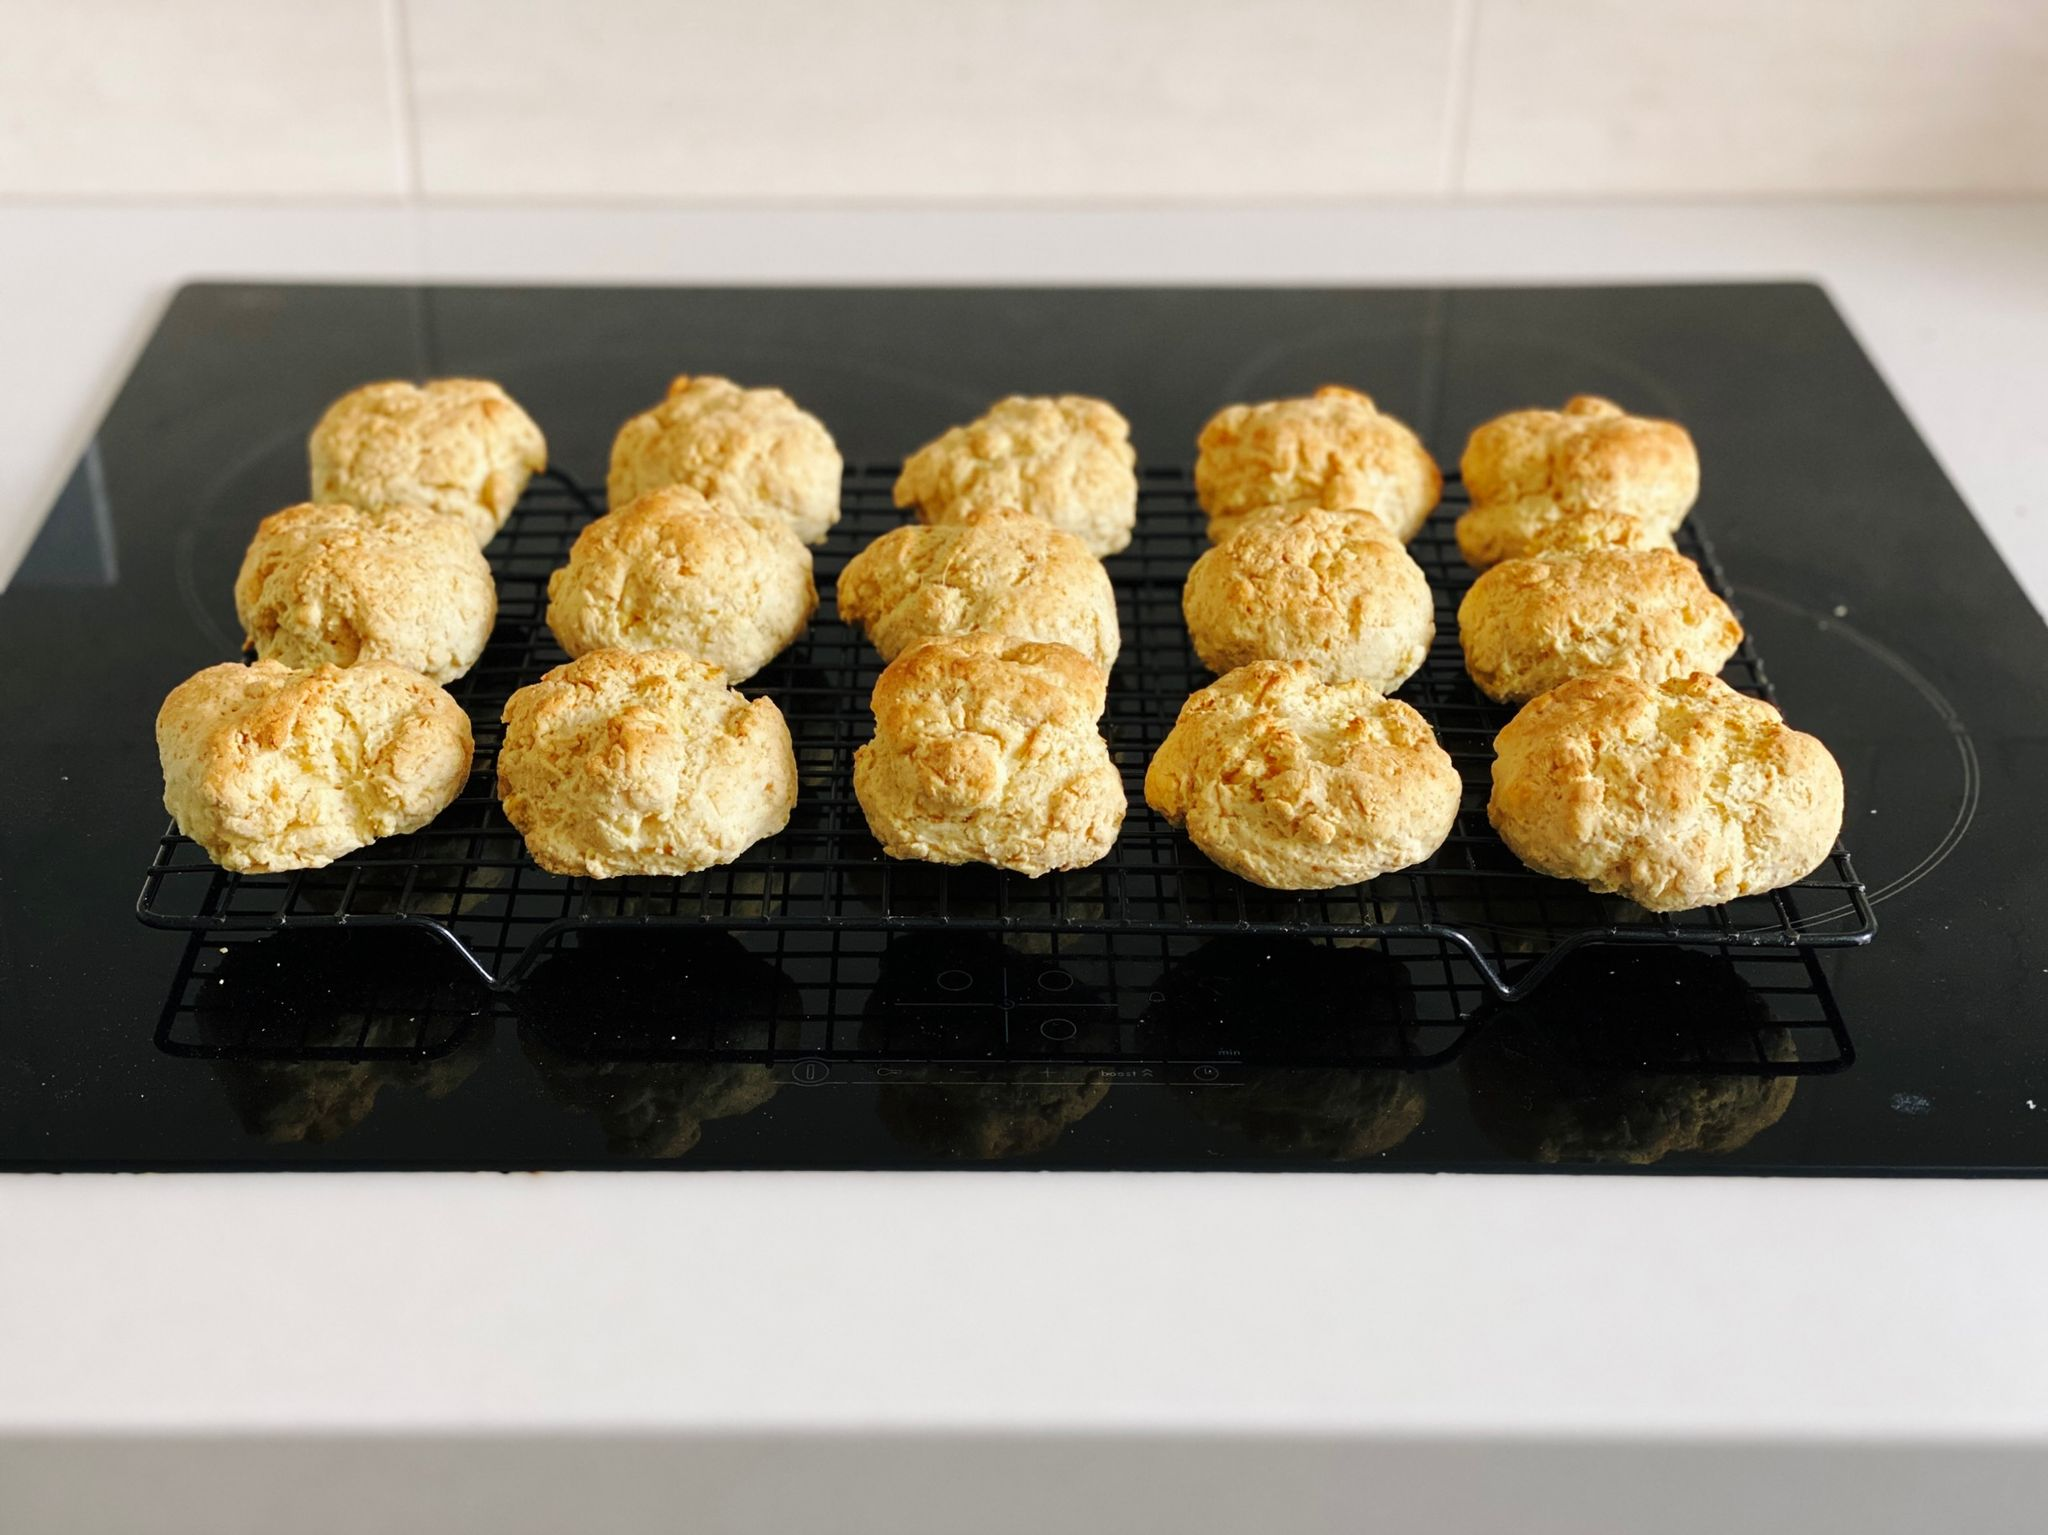 A photo of a bunch of golden-brown cut rounds (basically savoury scones) sitting on a cooling rack.